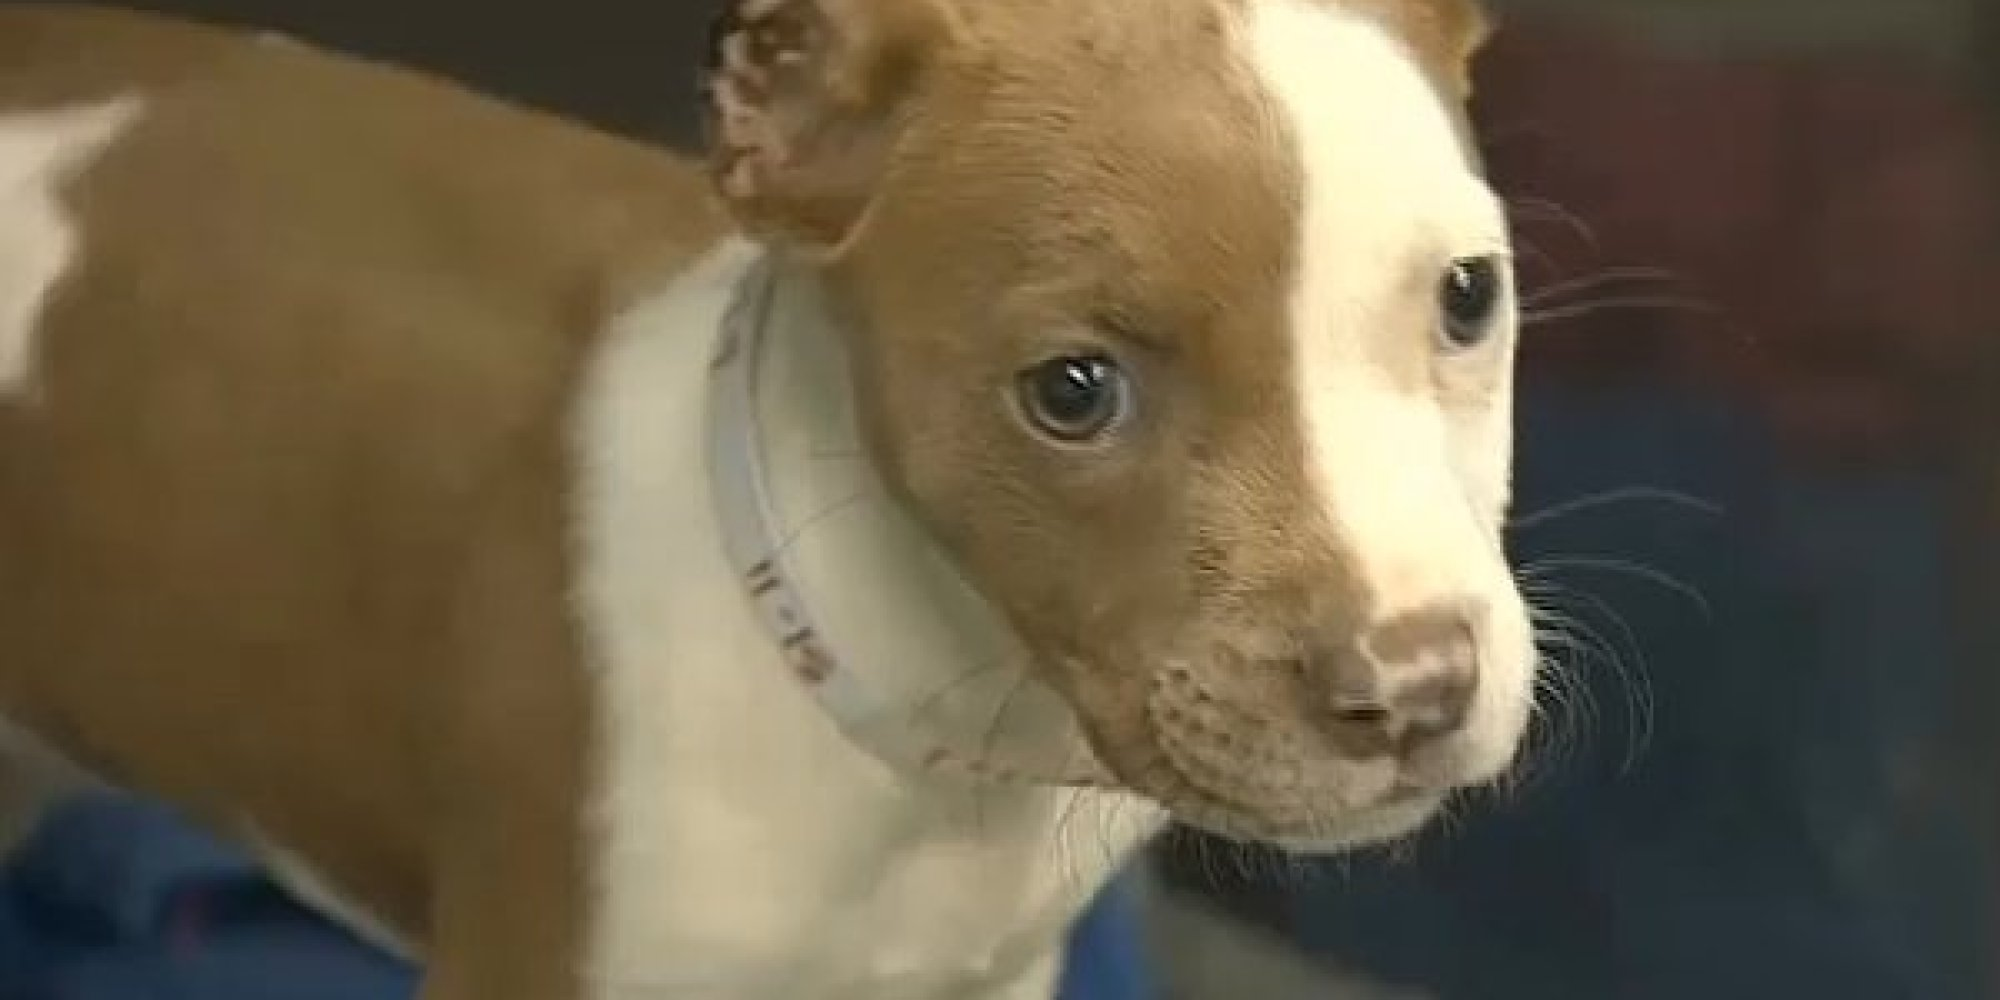 Man Performs At-Home C-Section On Dog, Cut Puppies' Ears ...